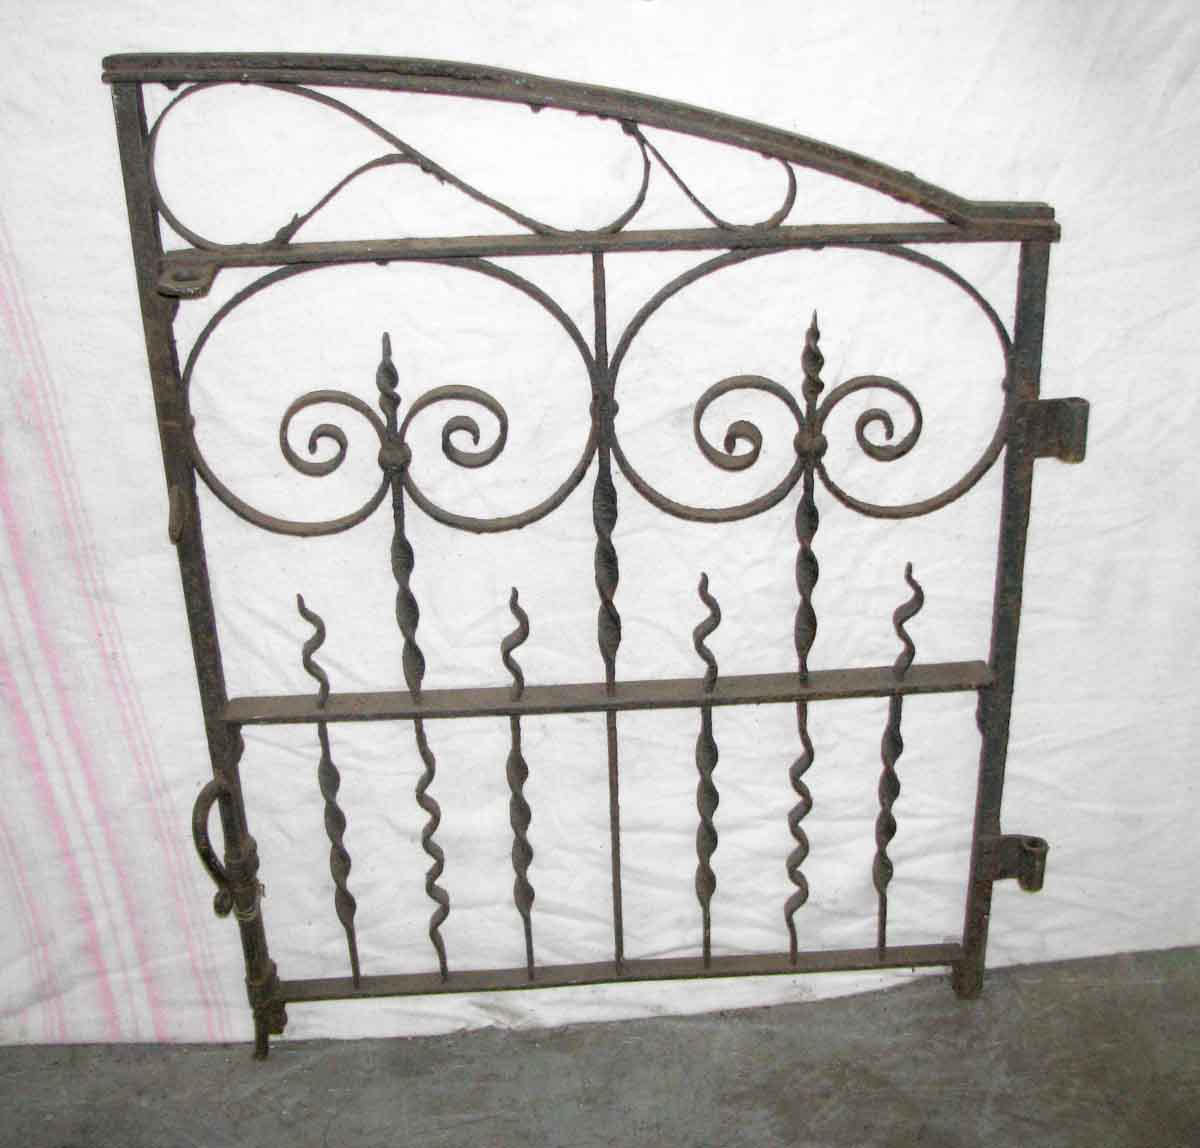 Arched antique iron garden gate olde good things